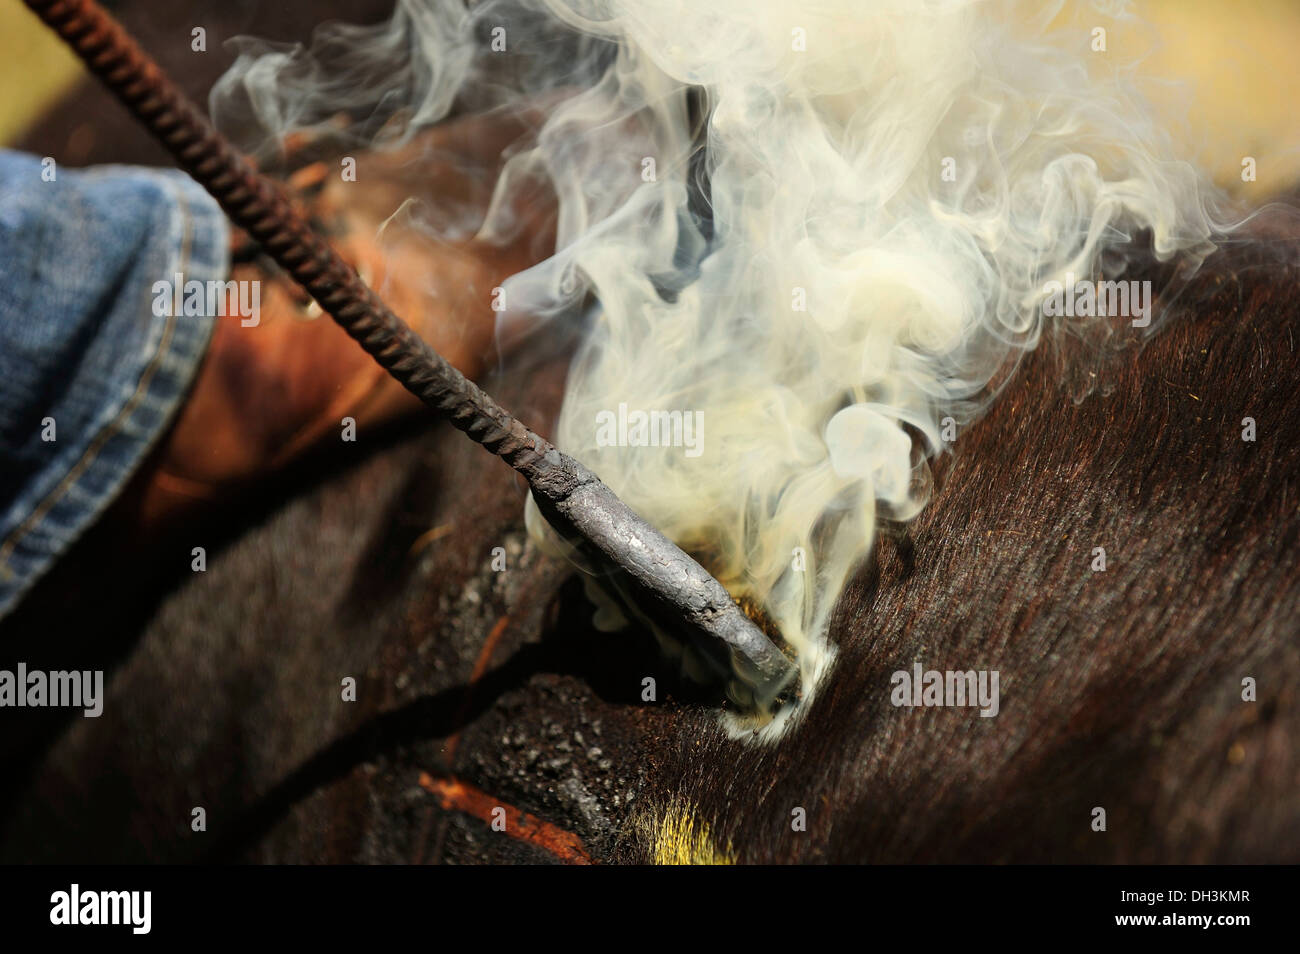 Hot branding iron burns into the skin of a calf to brand it, Cypress Hills, Saskatchewan Province, Canada - Stock Image